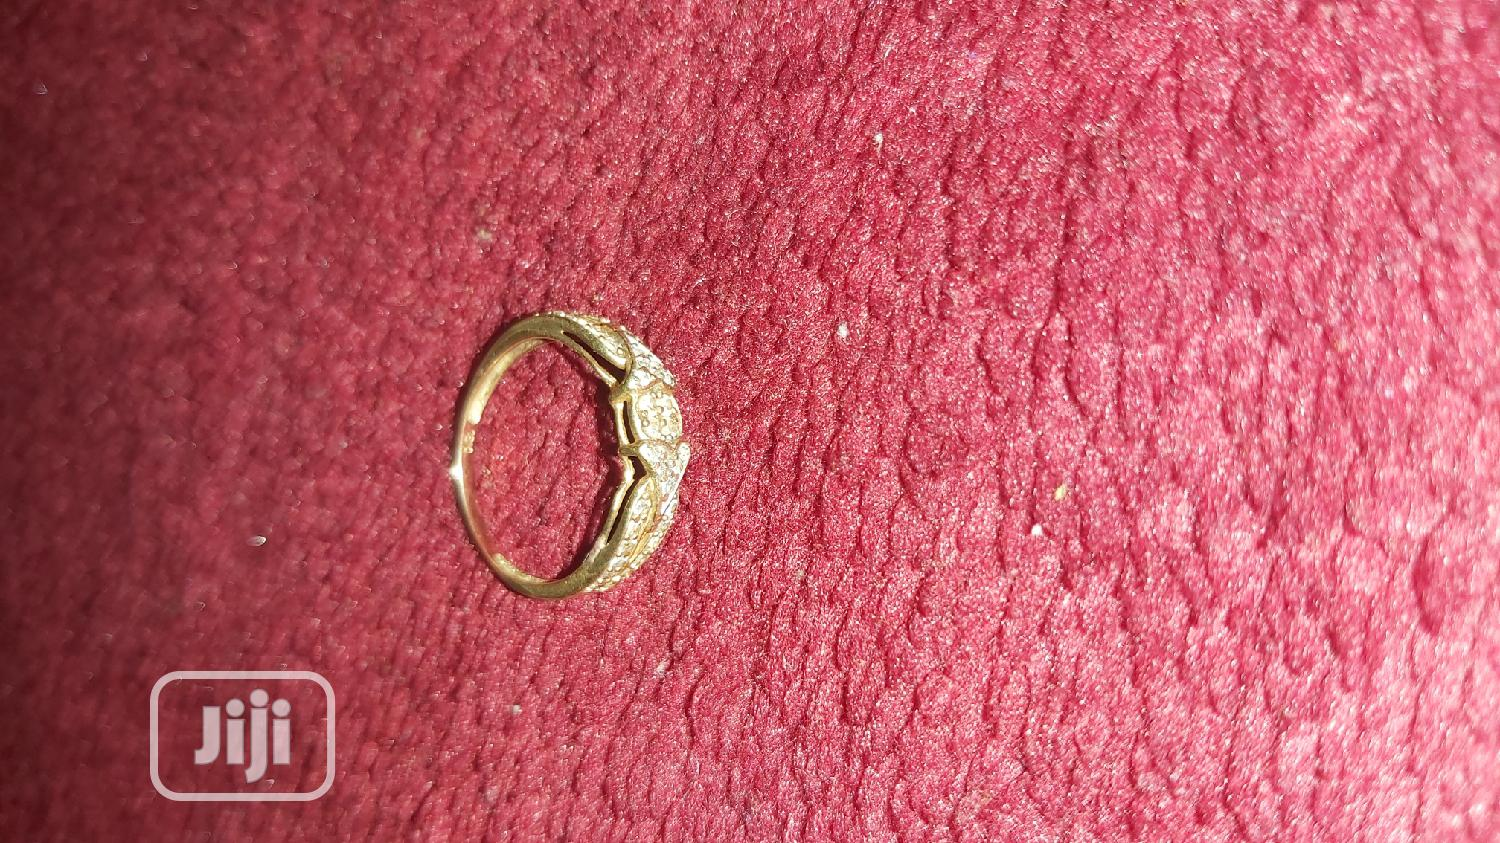 ITALY 750 Tested 18karat Engagement Ring | Wedding Wear & Accessories for sale in Amuwo-Odofin, Lagos State, Nigeria